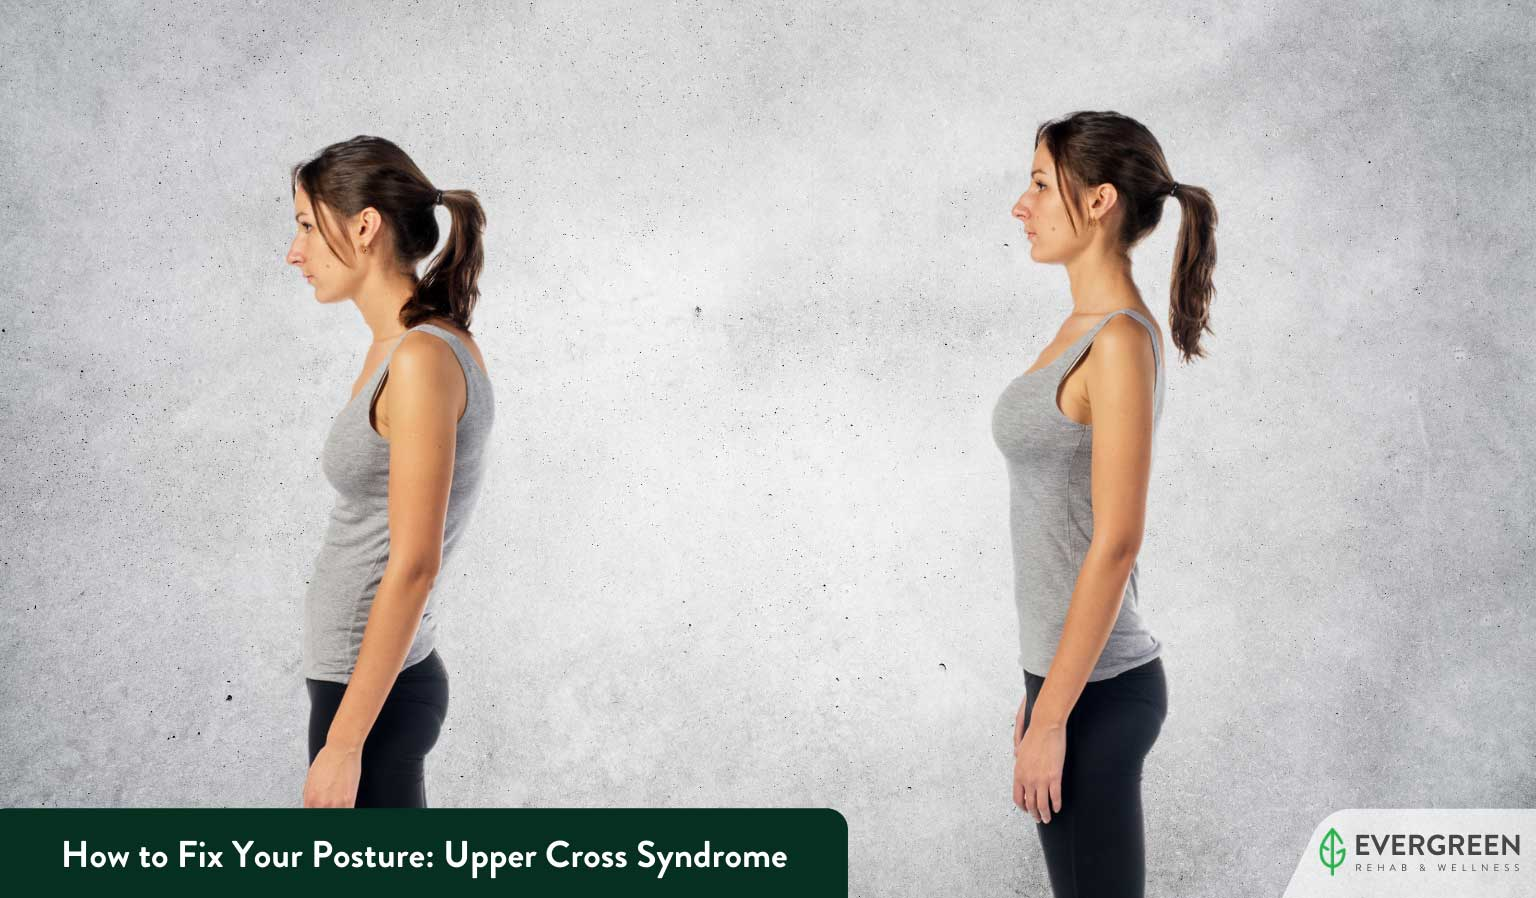 How to Fix Your Posture: Upper Cross Syndrome